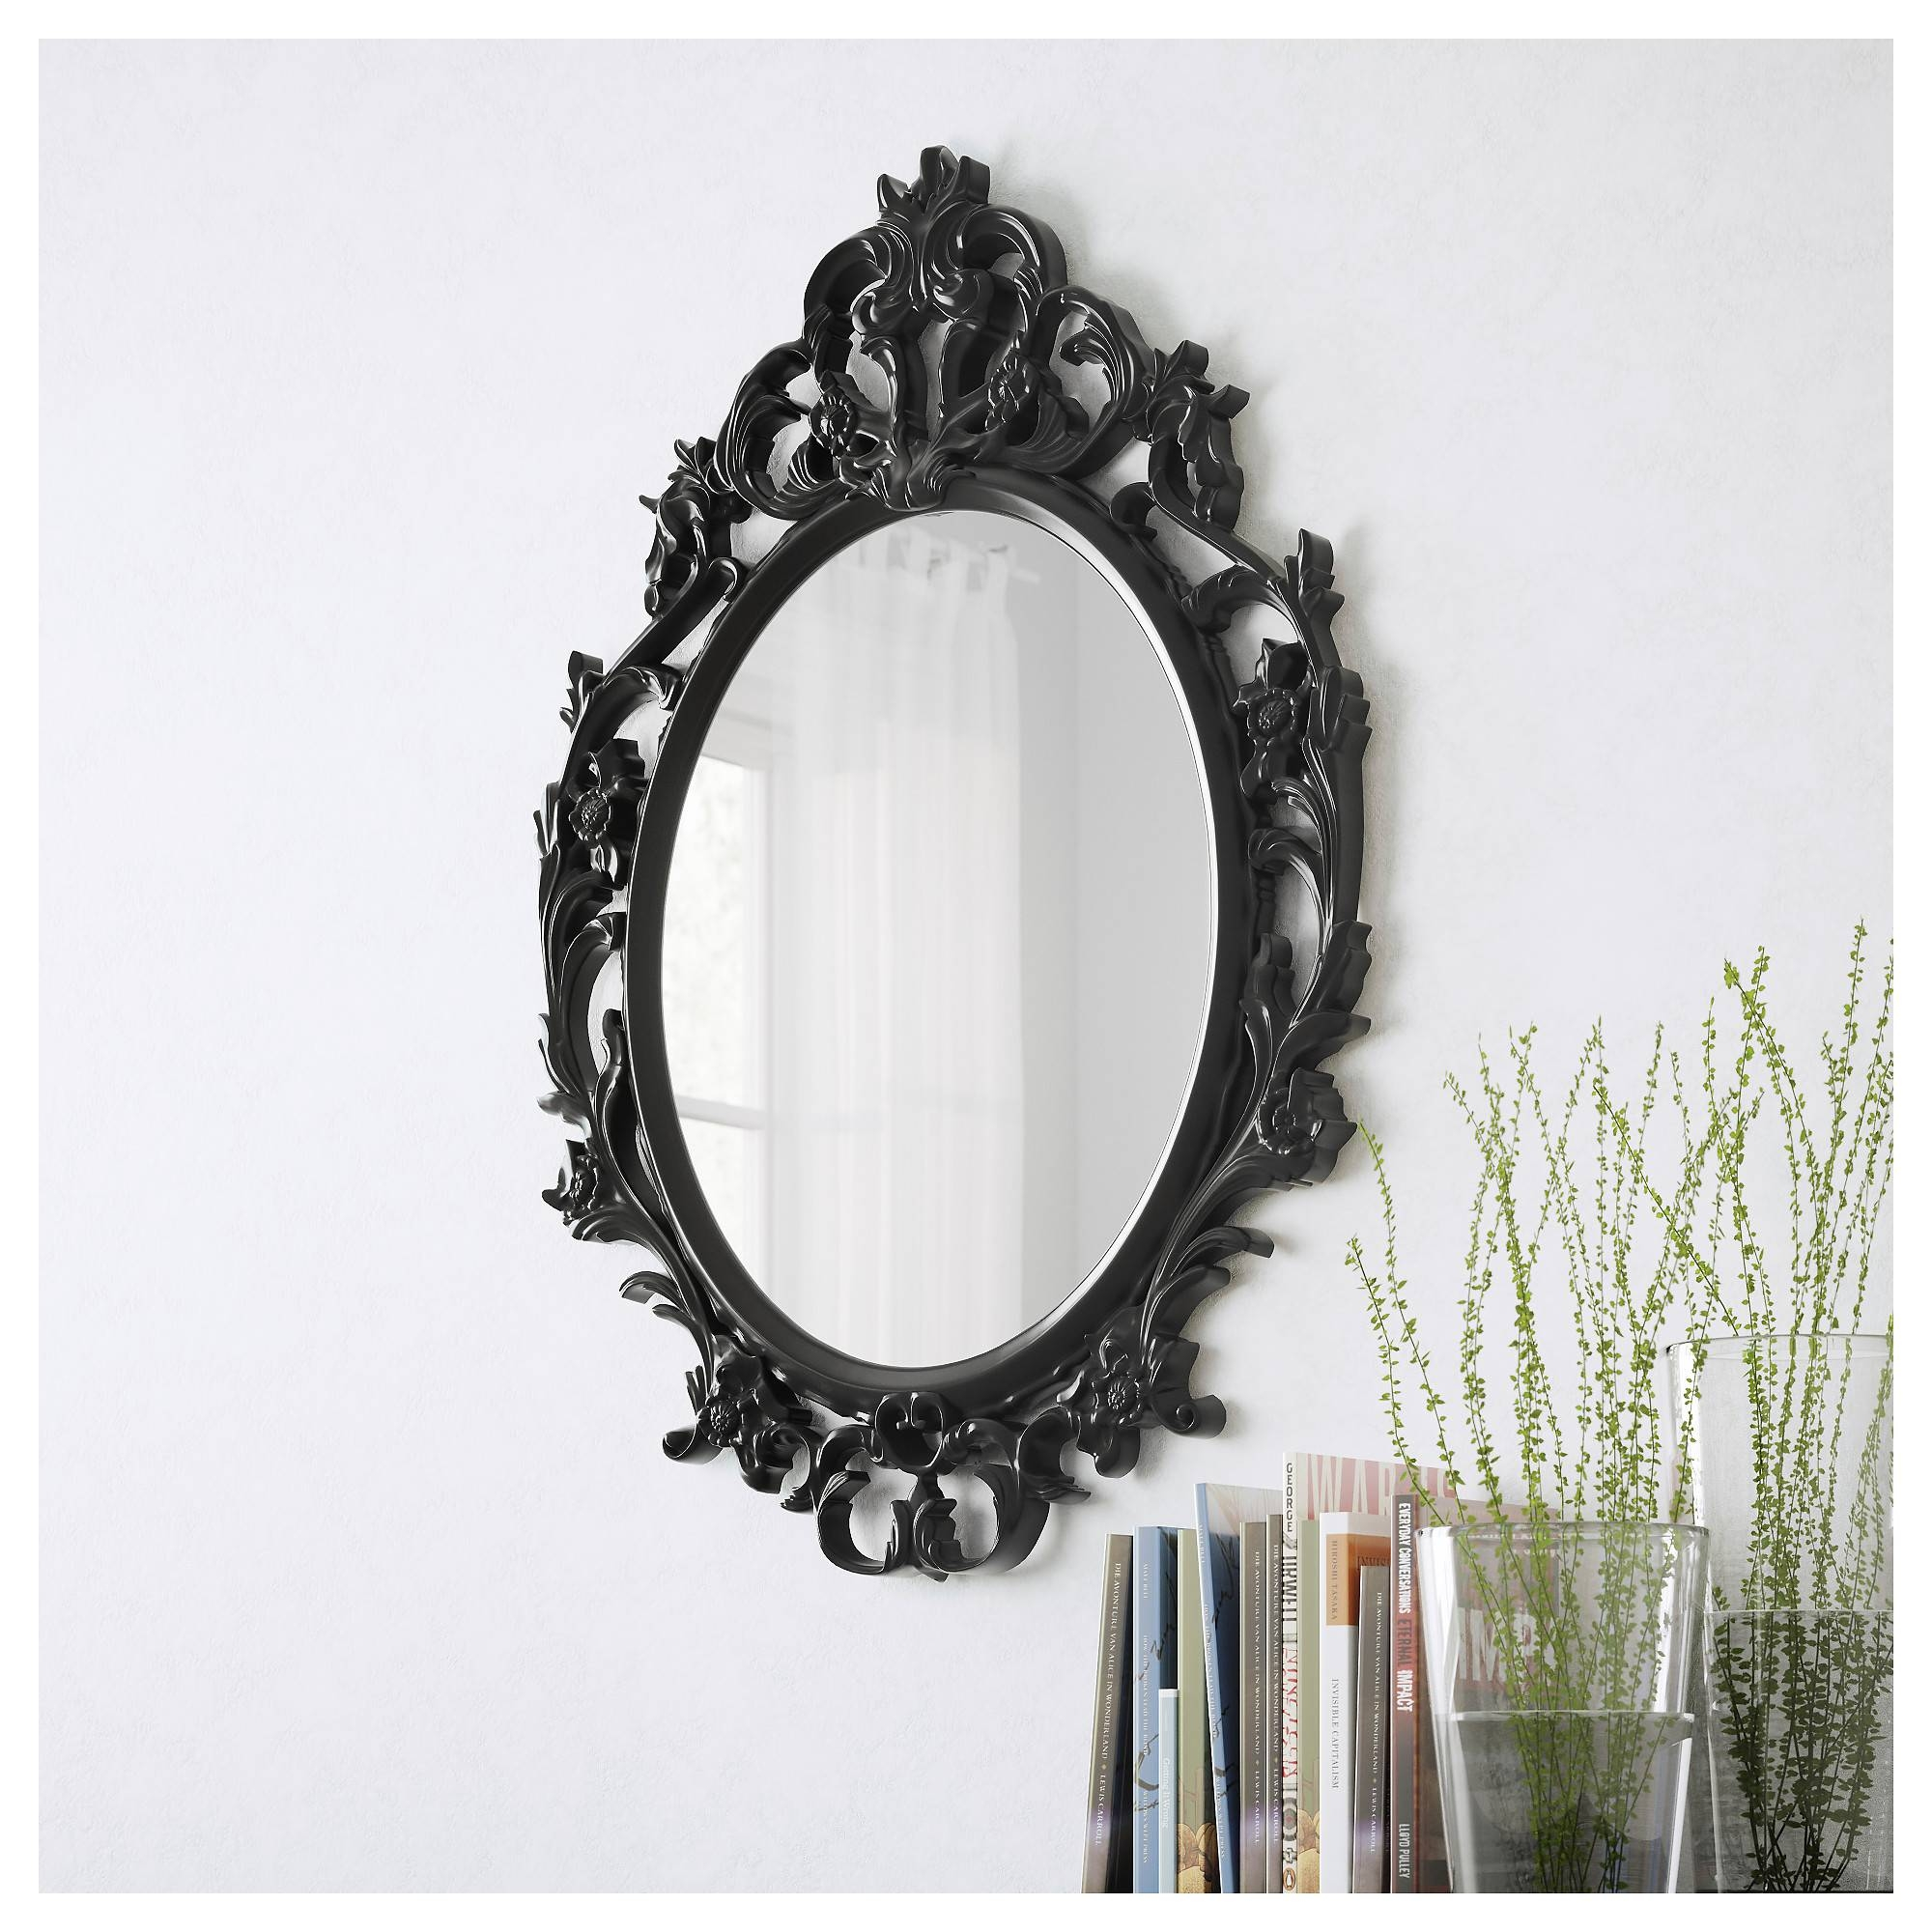 Ung Drill Mirror - Ikea intended for Oval Black Mirrors (Image 24 of 25)